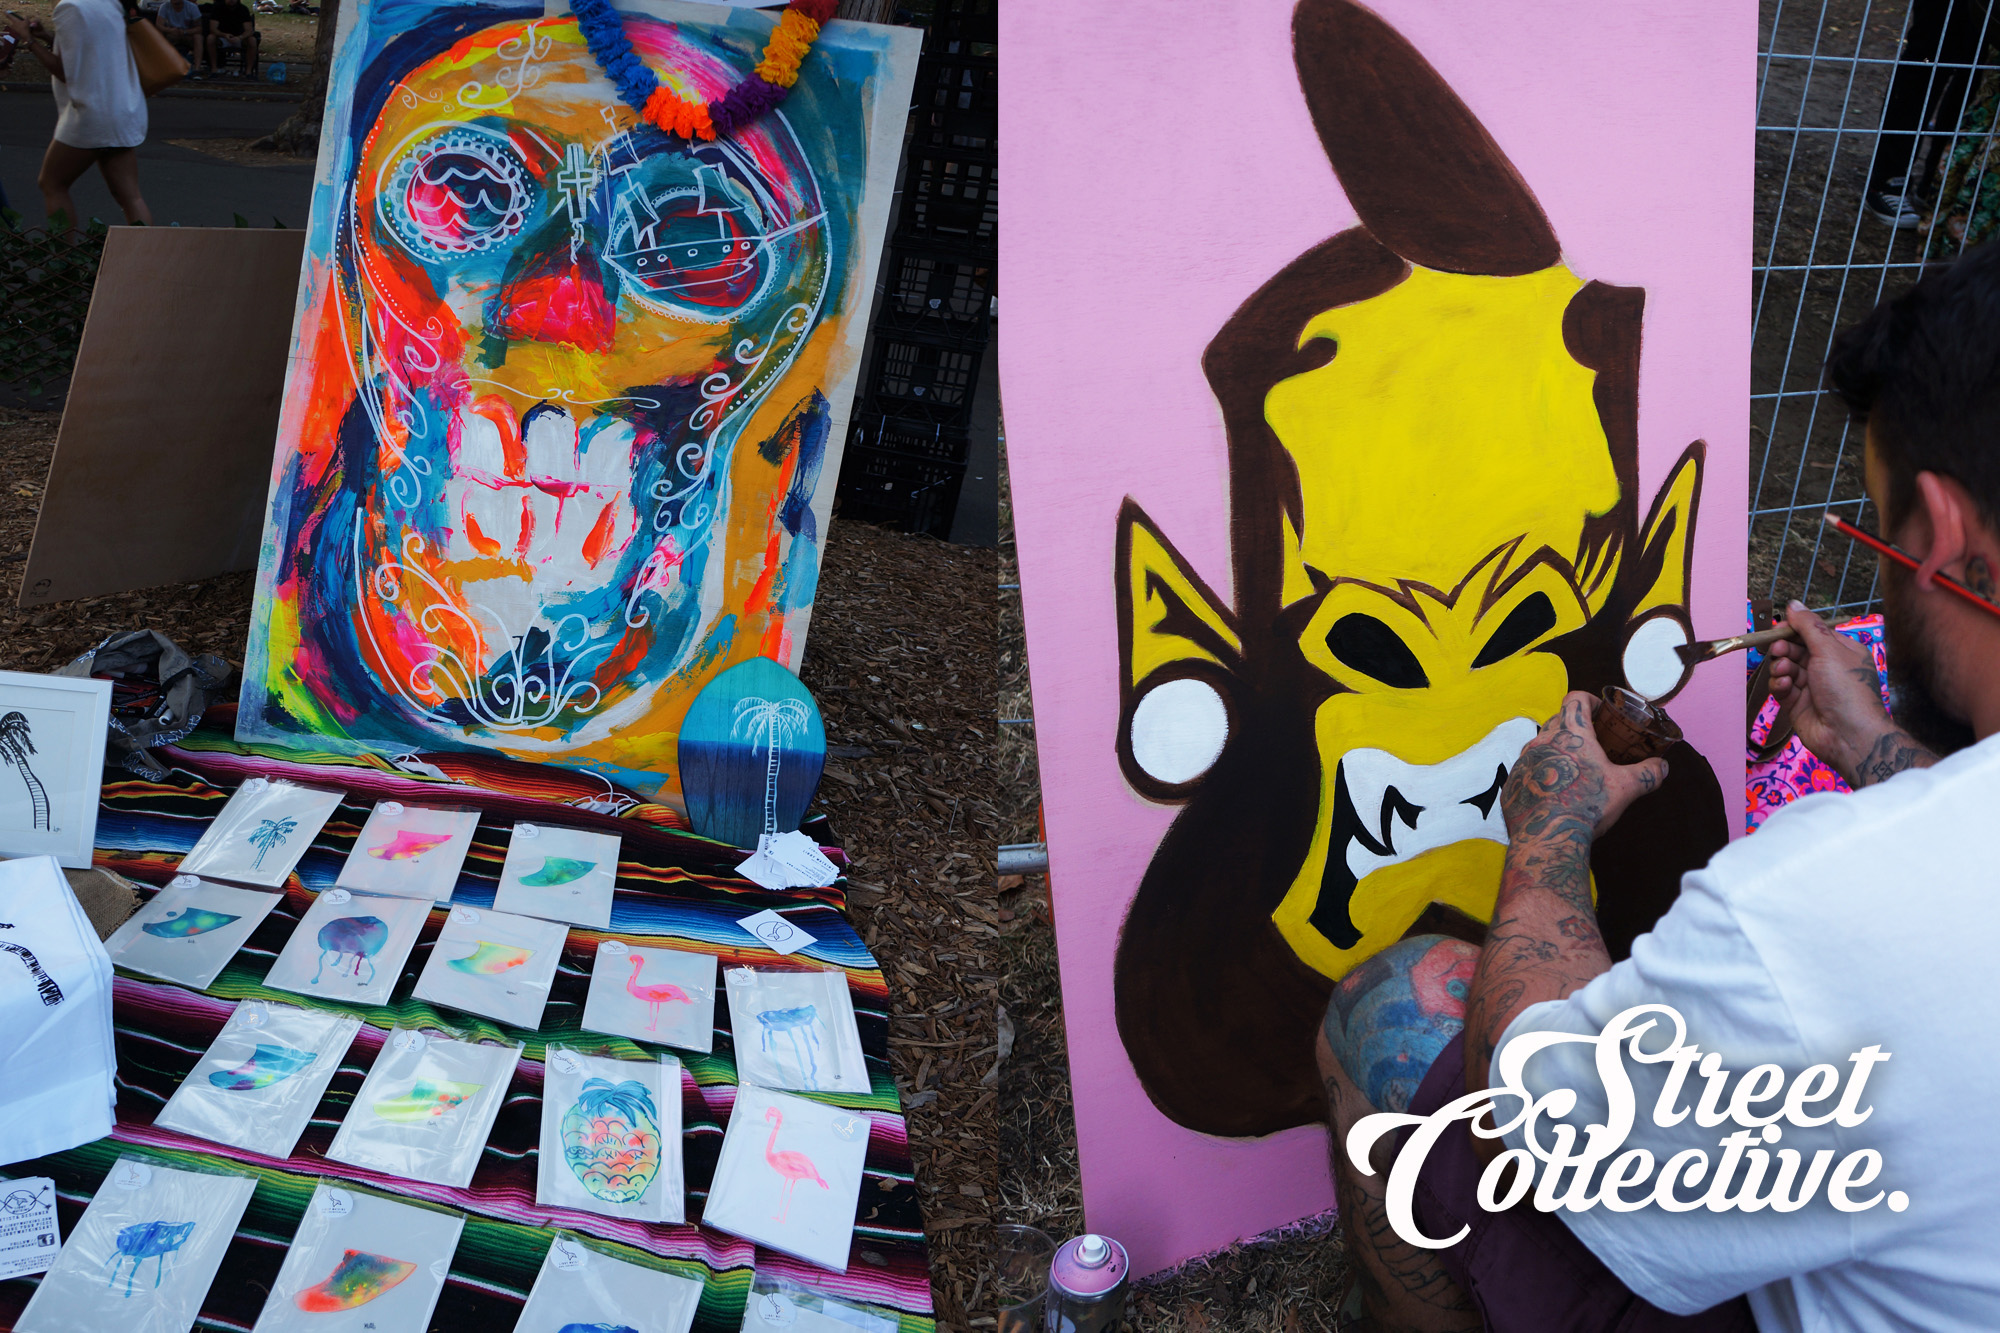 Street Collective 15